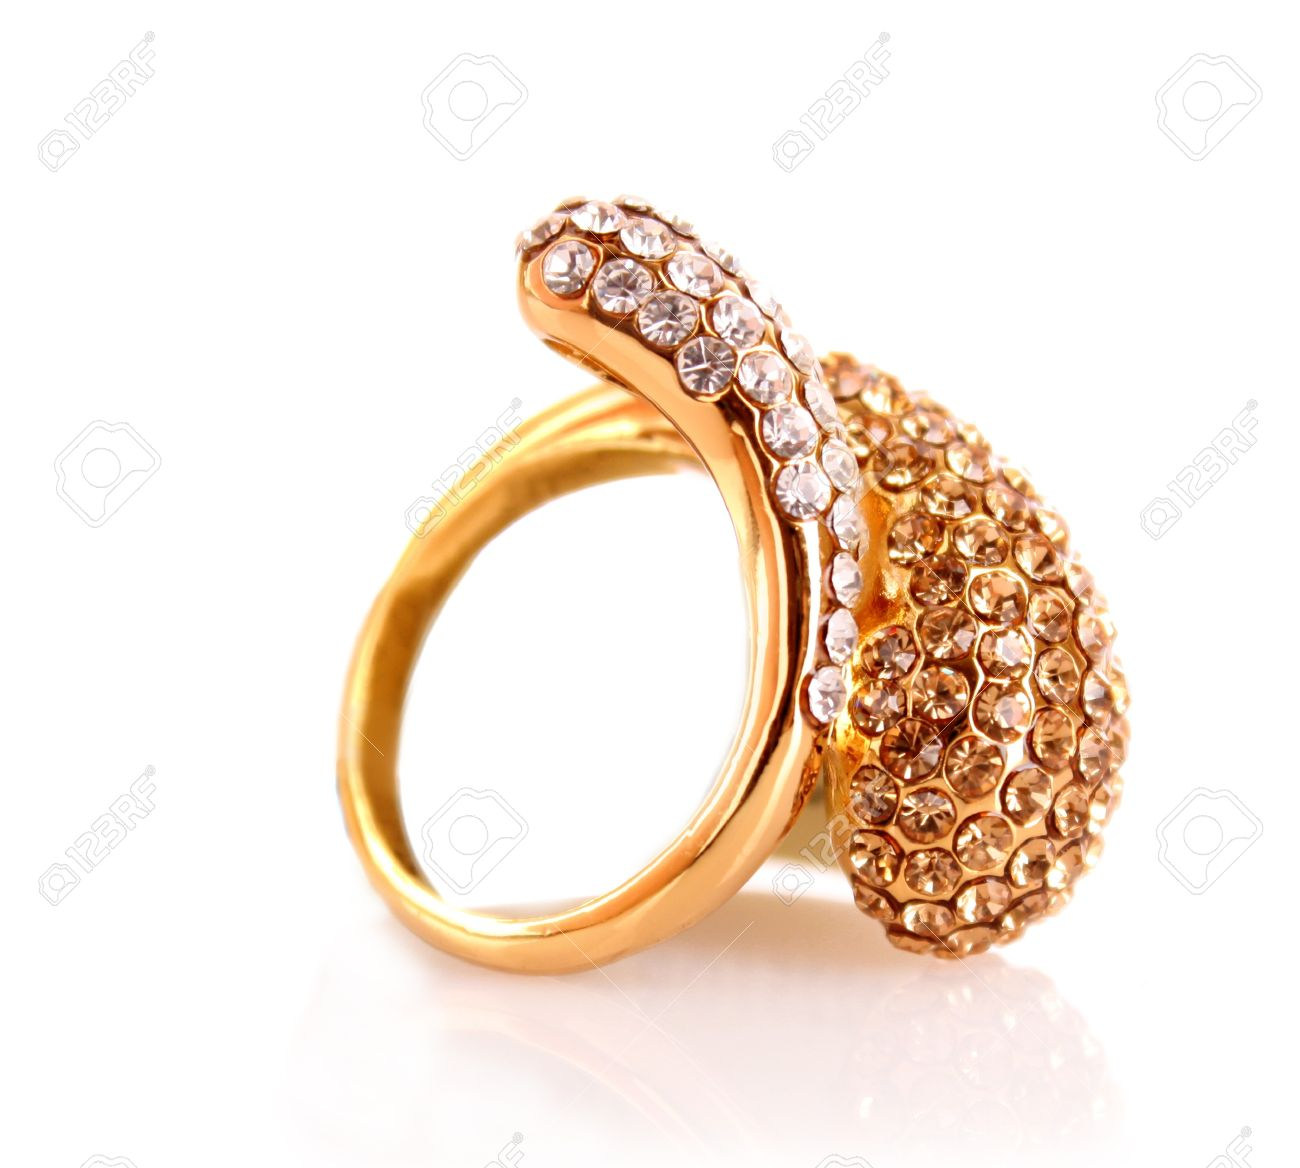 Golden Ring Isolated On White Stock Photo, Picture And Royalty ...